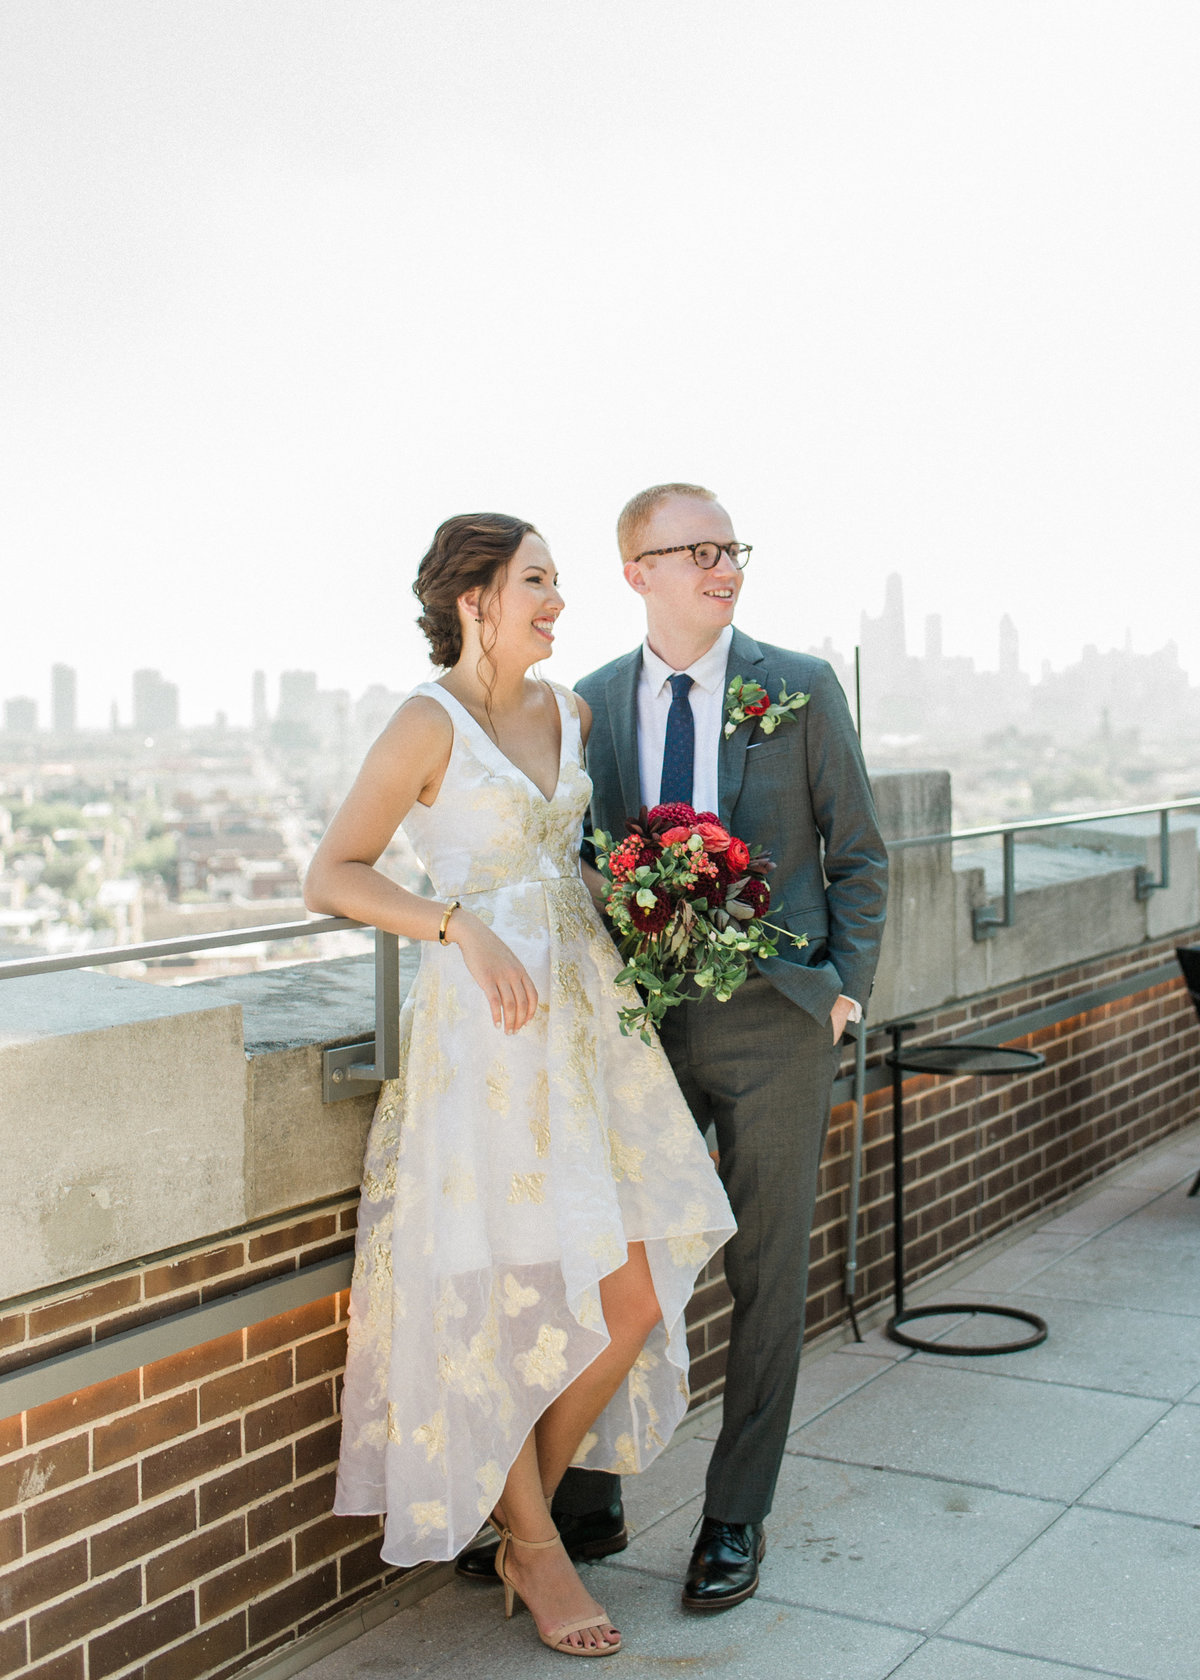 couple smiling on rooftop with skyline in background